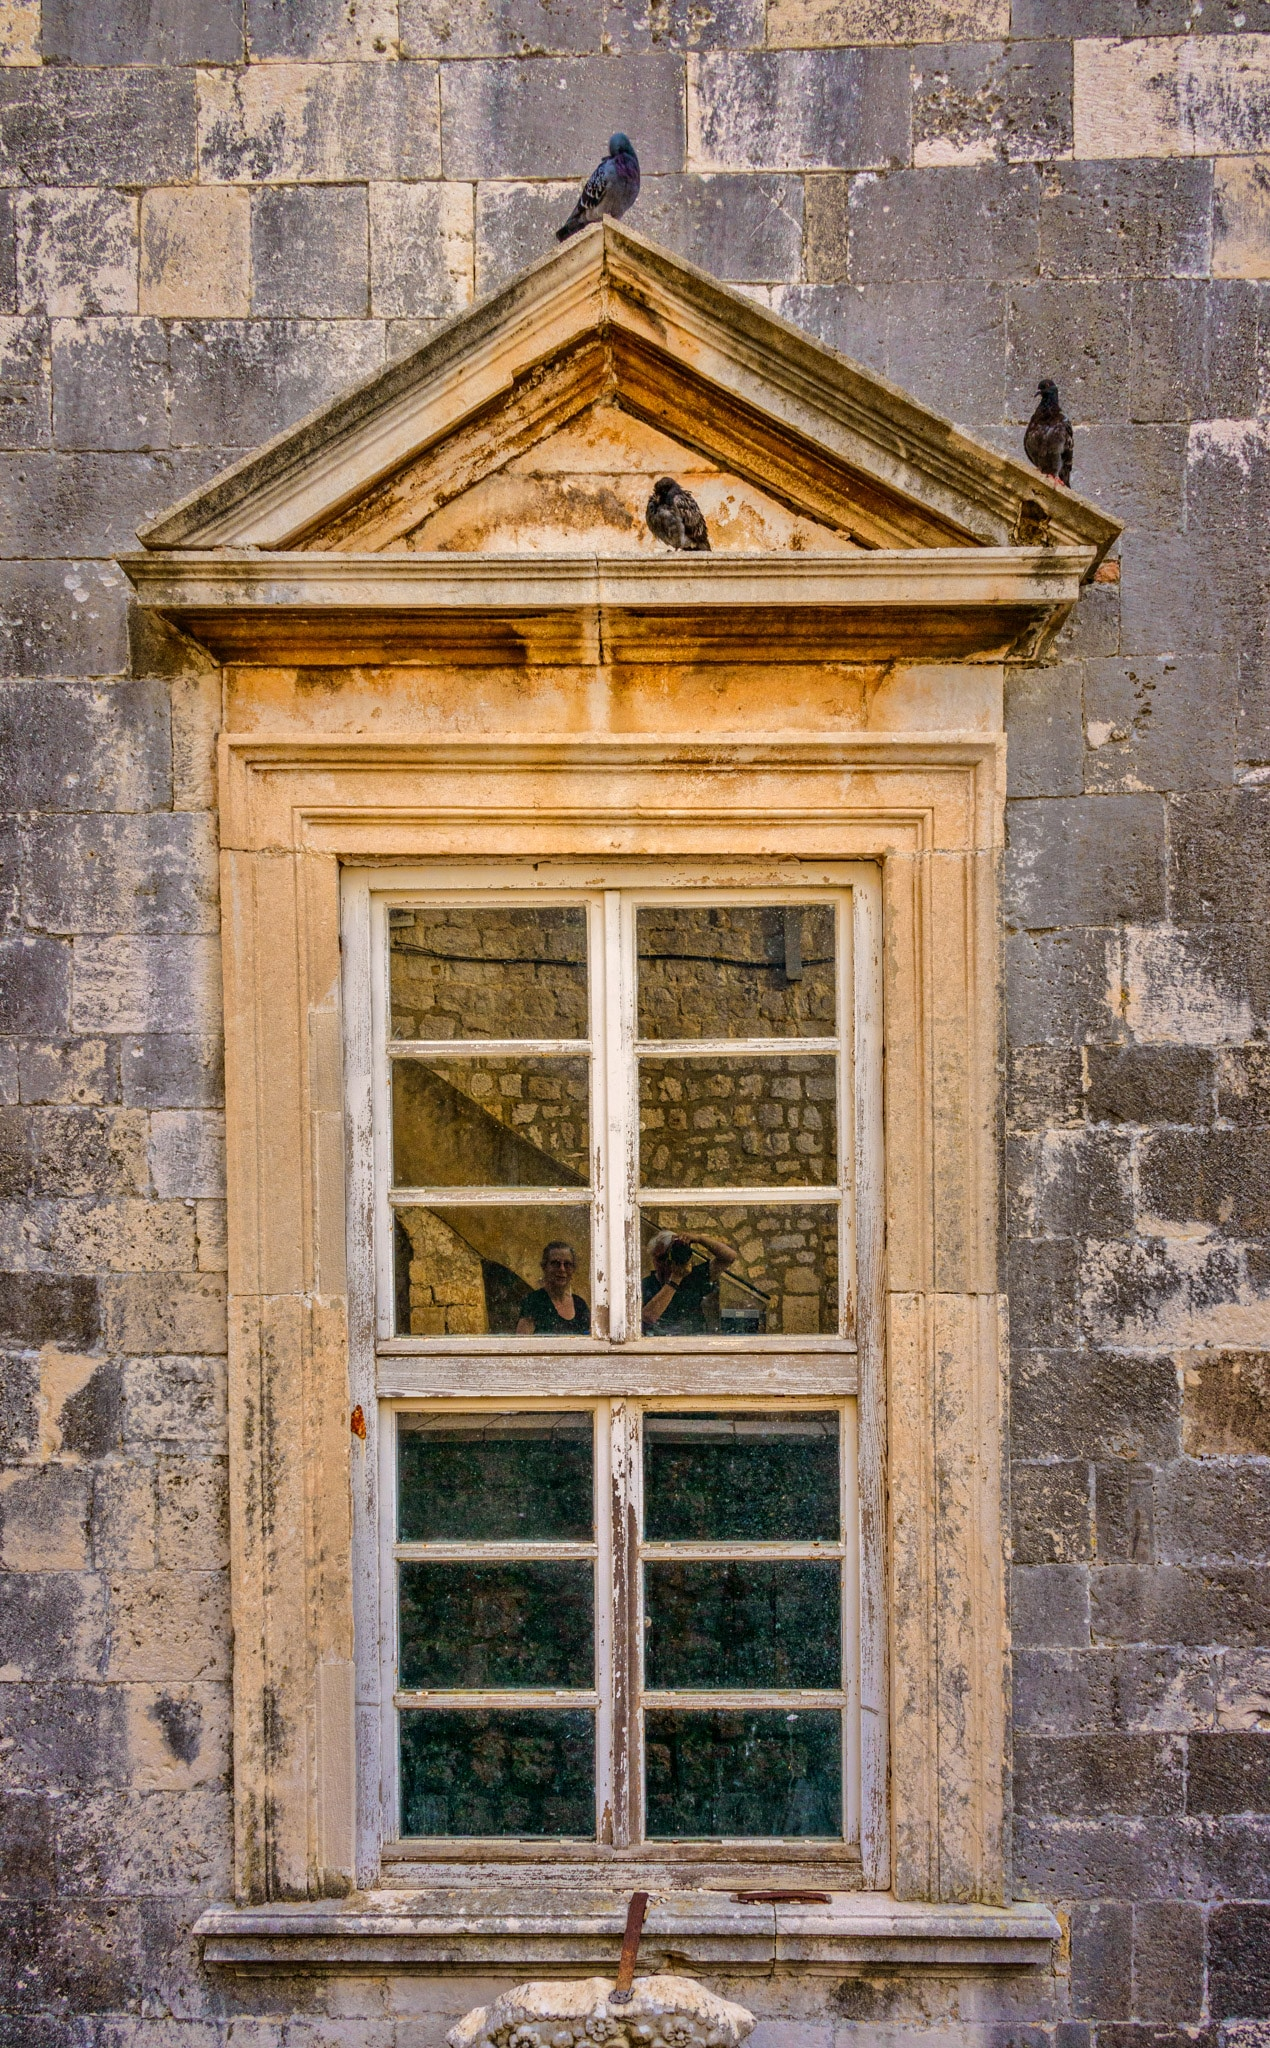 A window with a Roman-style peaked pediment as seen from the wall surrounding Dubrovnik Old City in Croatia.